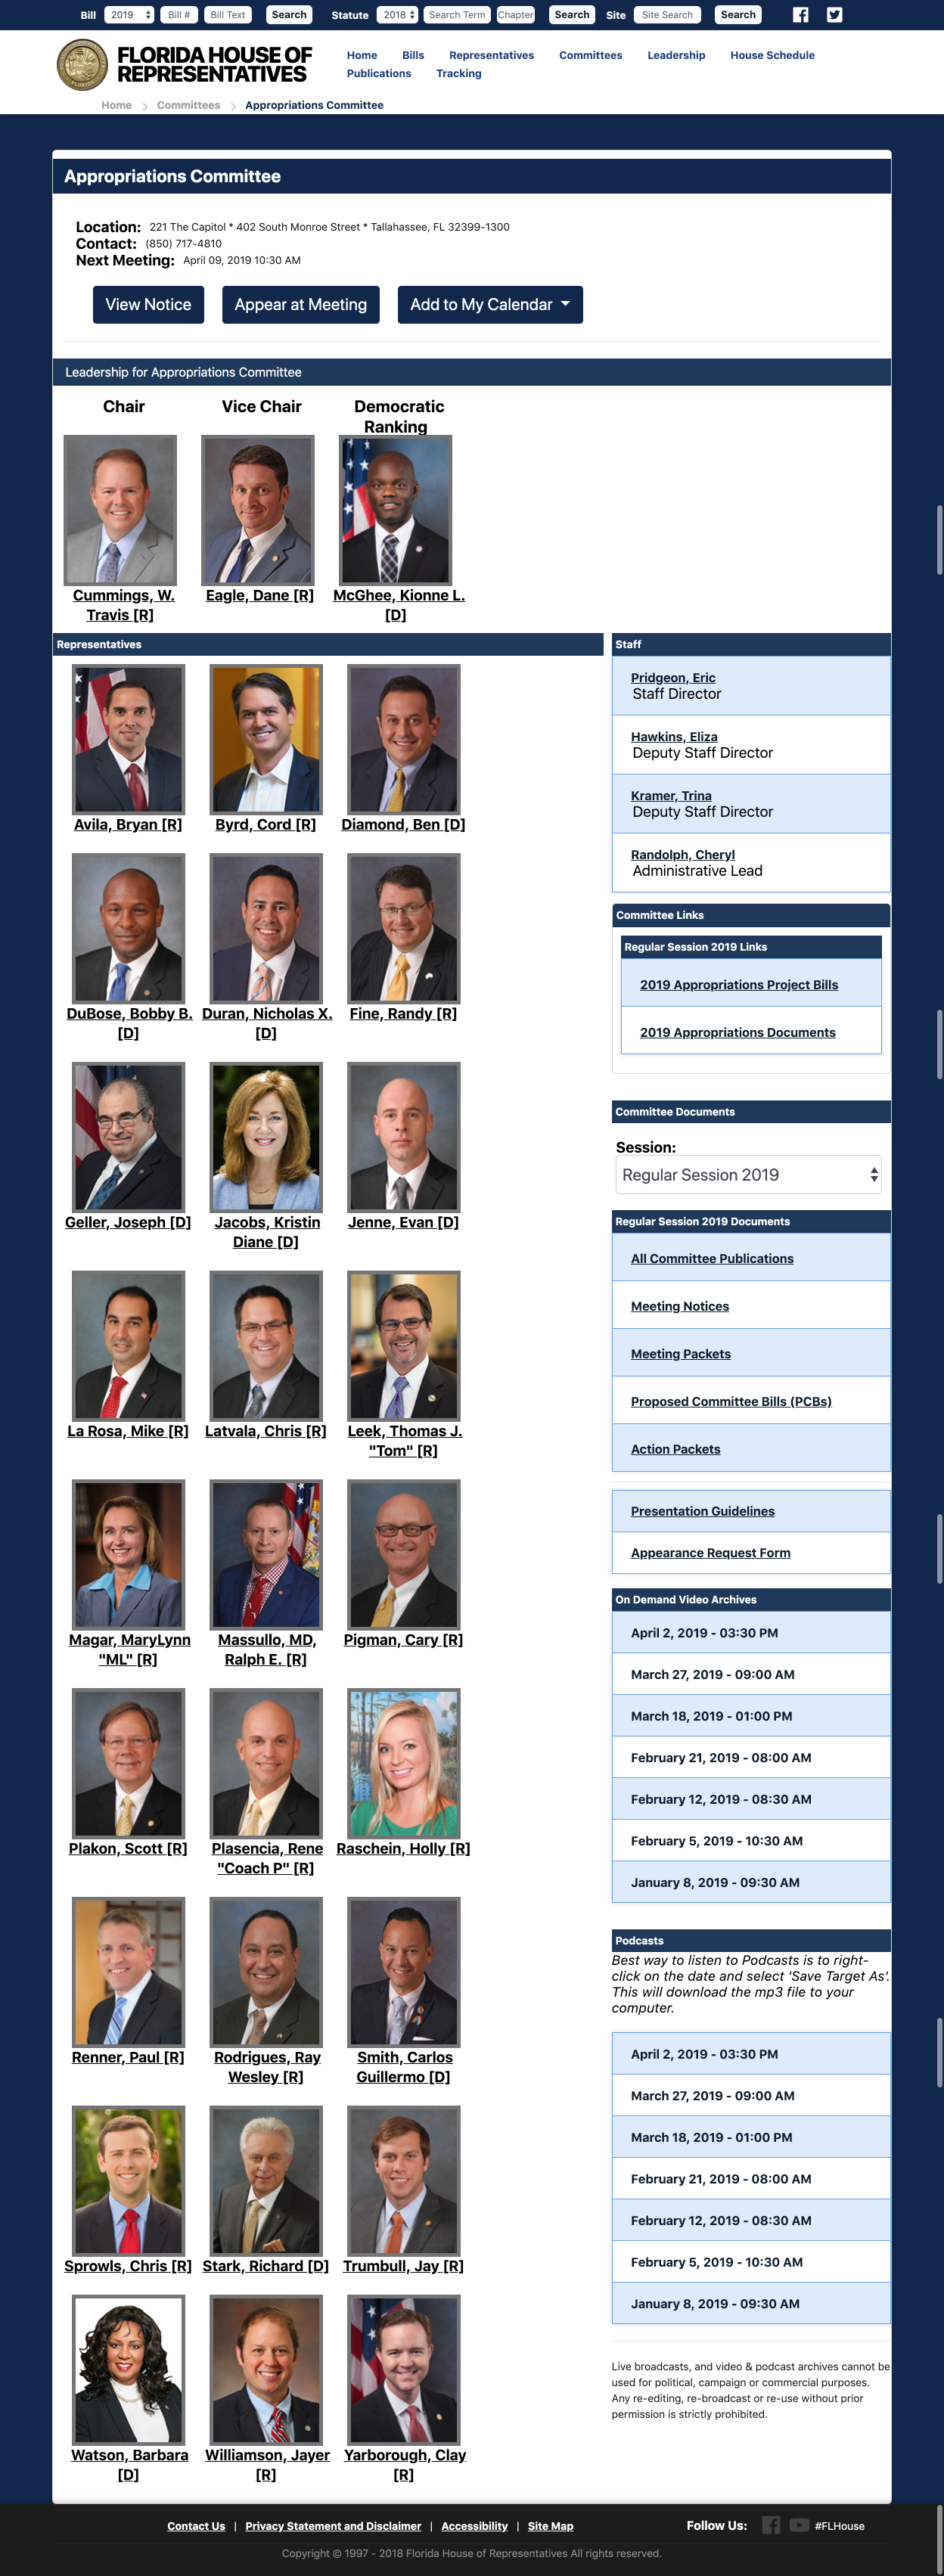 Appropriations Committee _ Florida House of Representatives.png